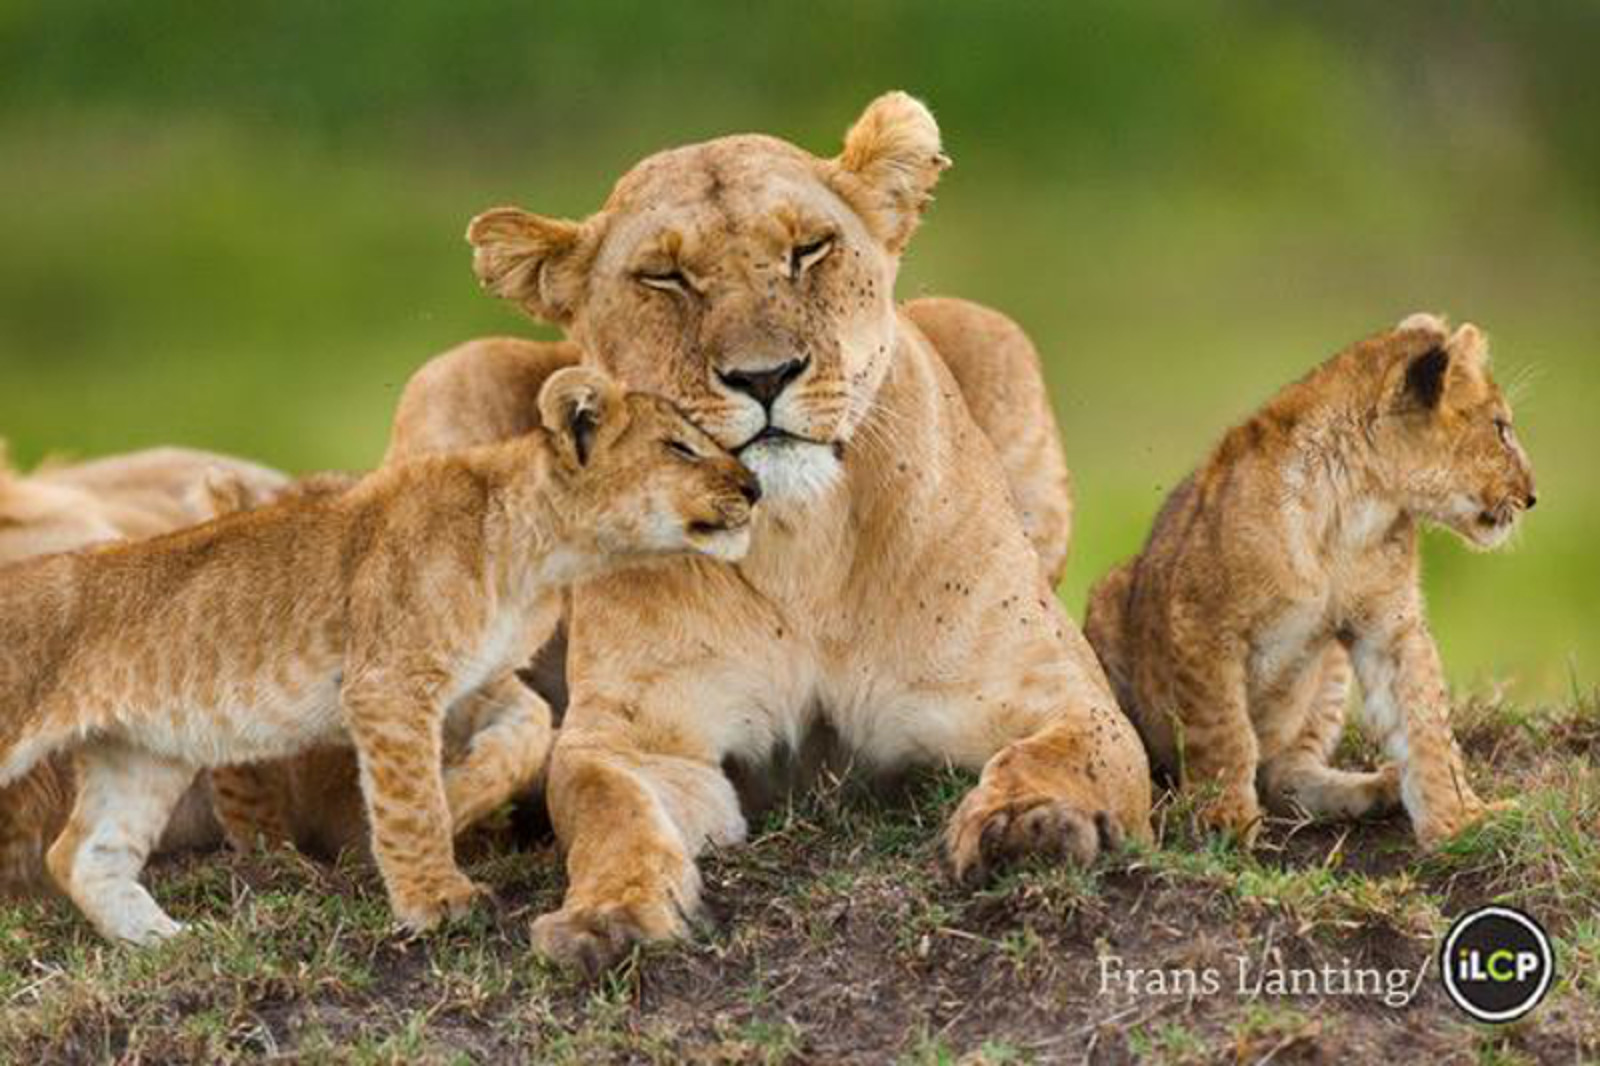 This is How Baby Cubs Should be Allowed to Bond With Their Mothers – Not Used as Selfie Props